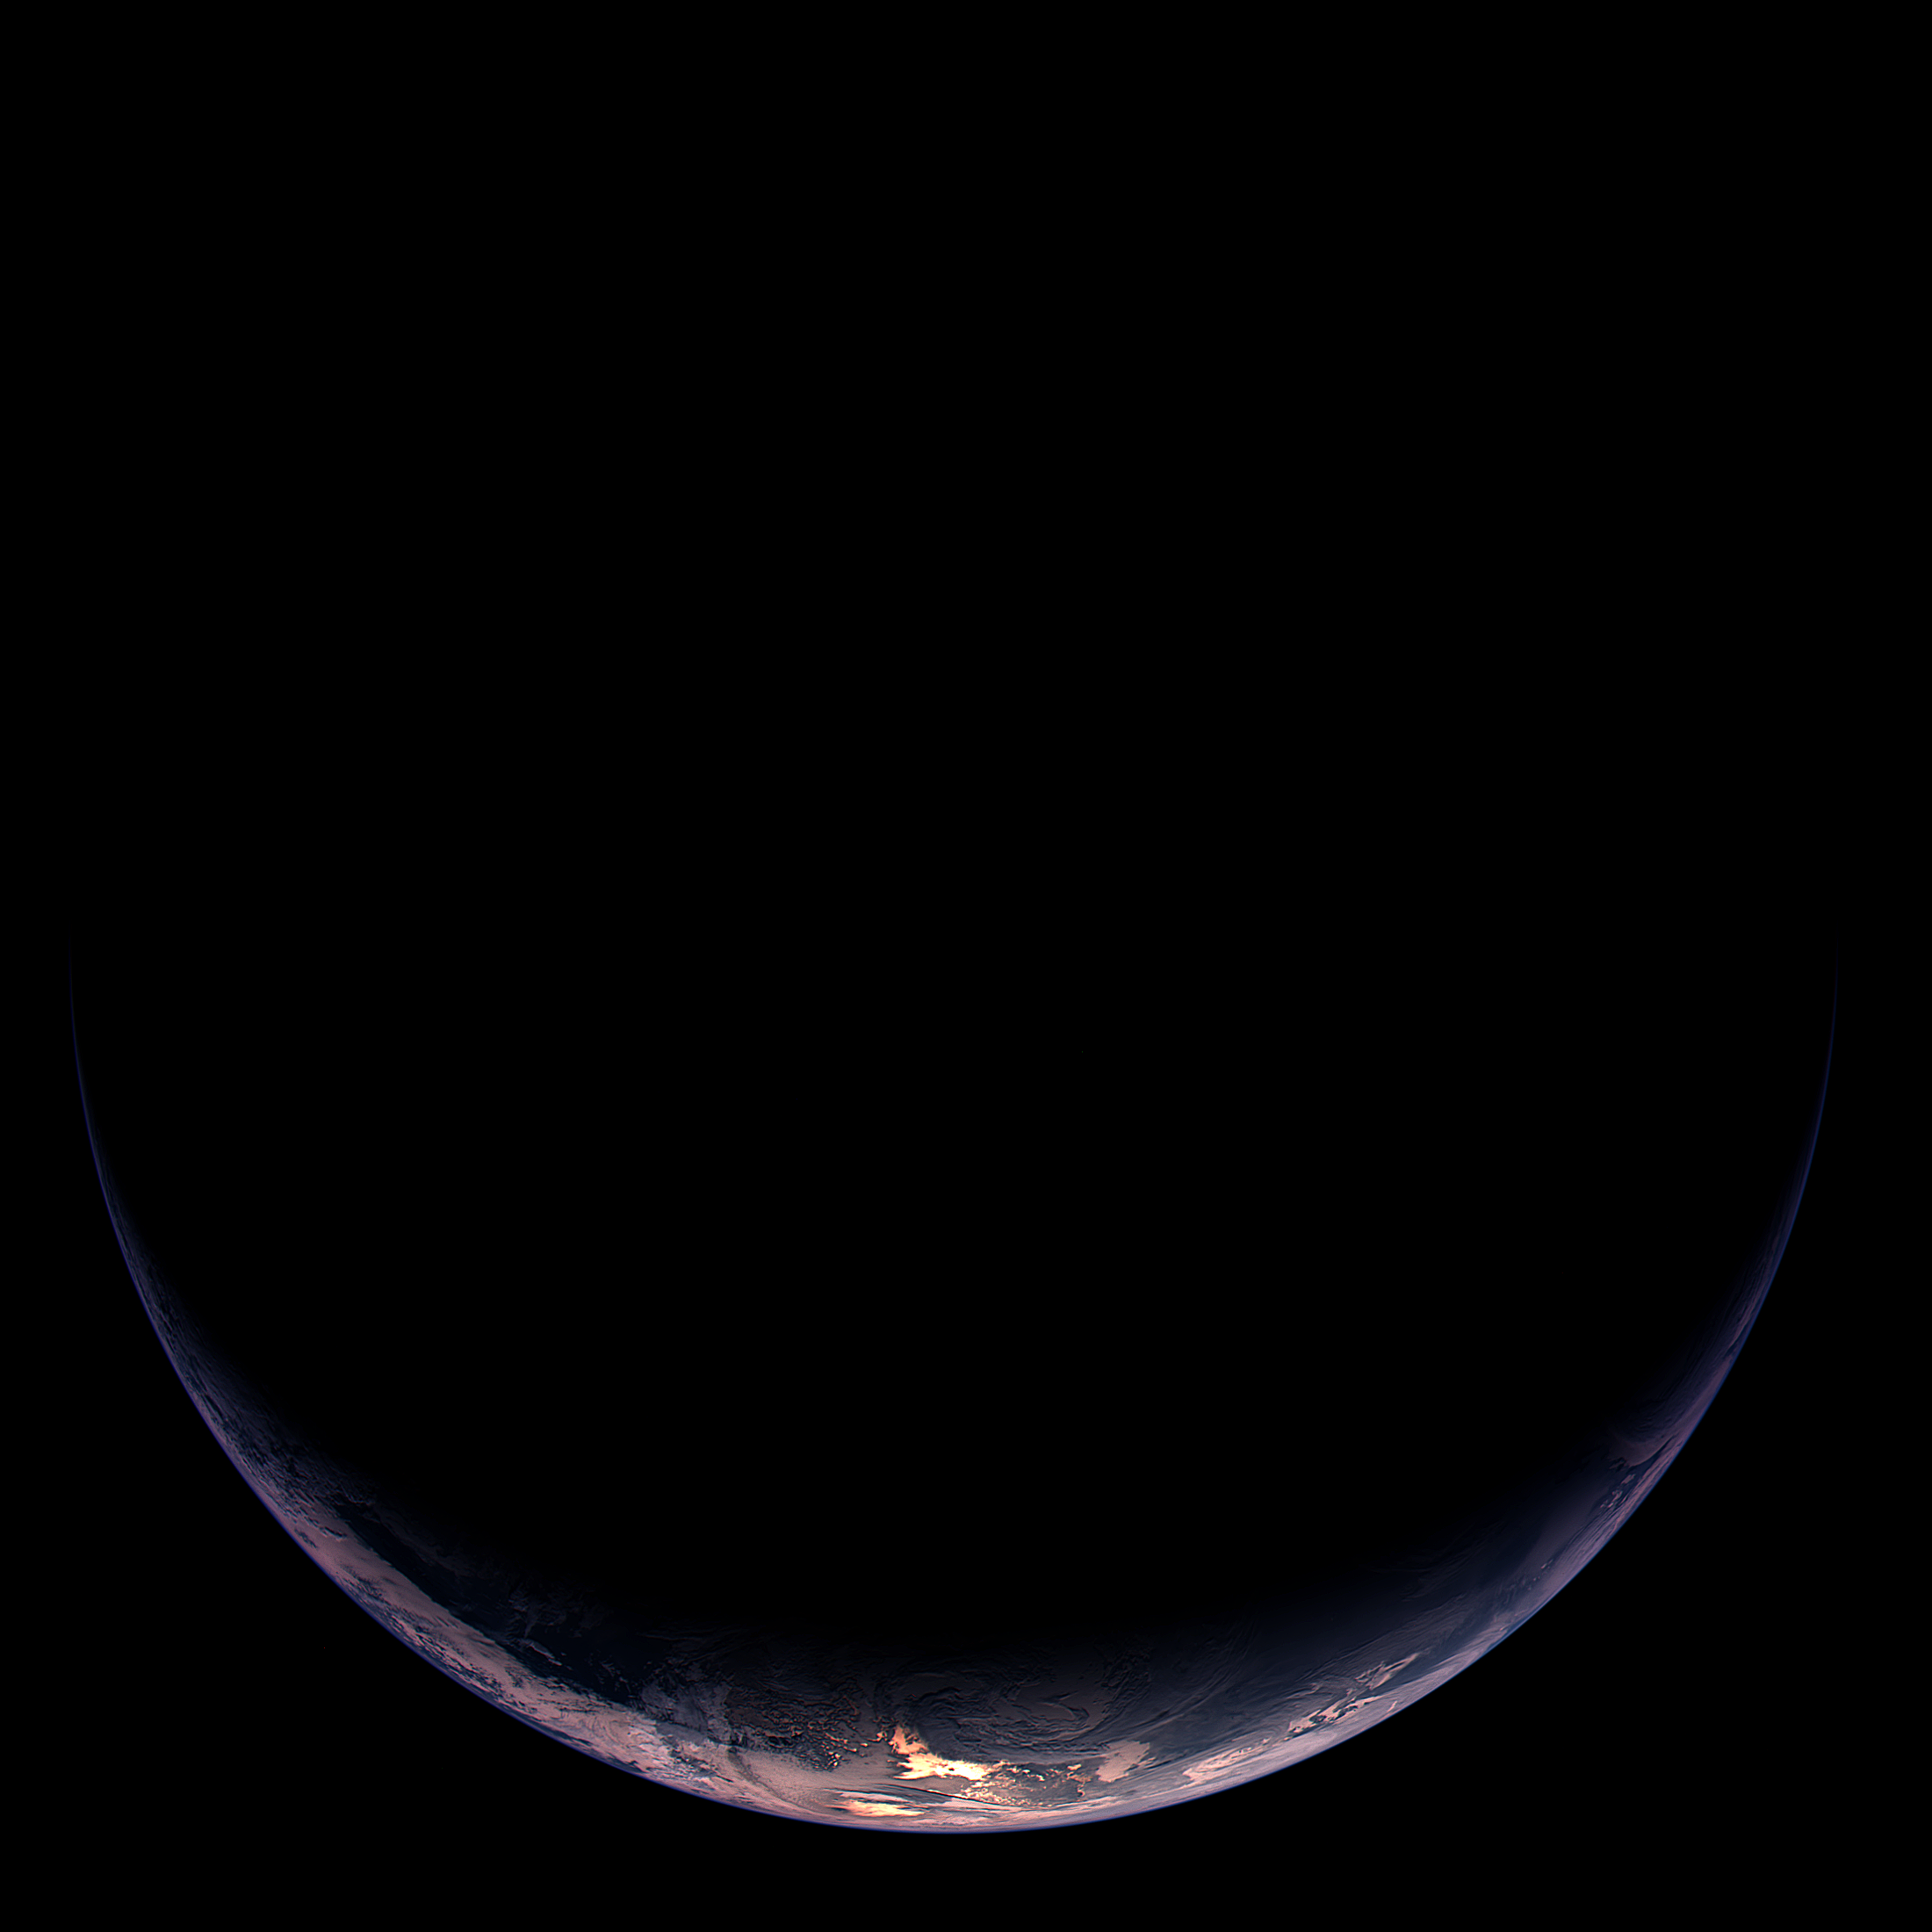 Esa Illuminated Crescent Of Earth Showing Part Of South